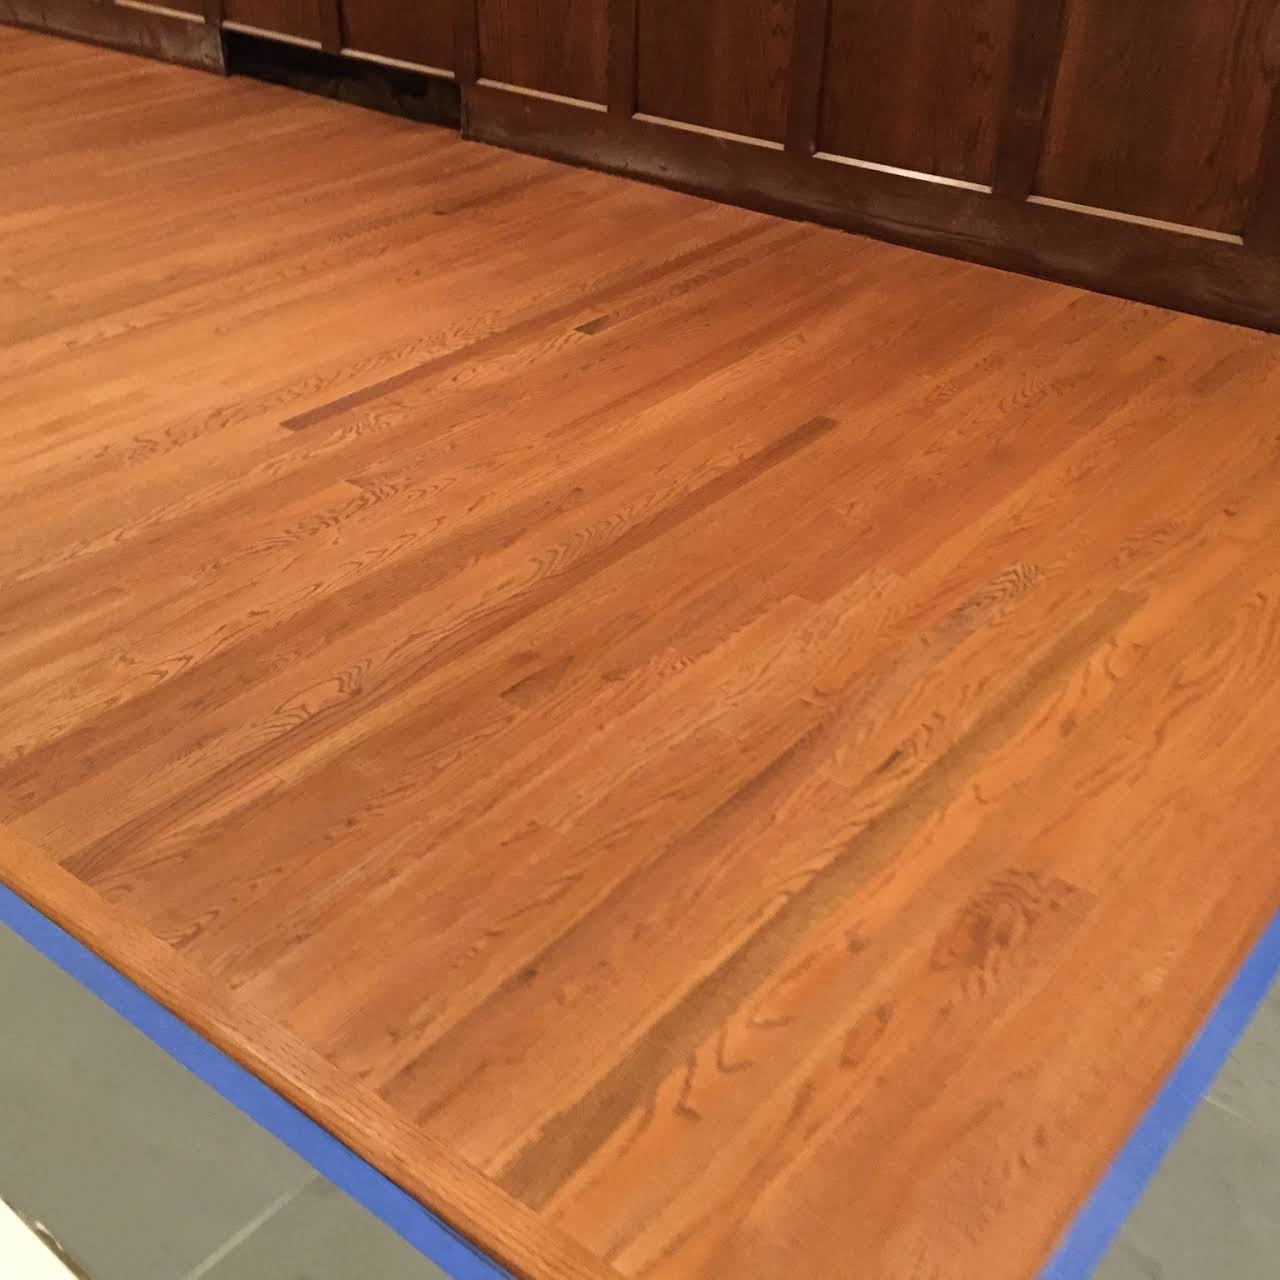 hardwood flooring estimate online of james hardwood floorsa llc local contractor no retail price again with are you looking f